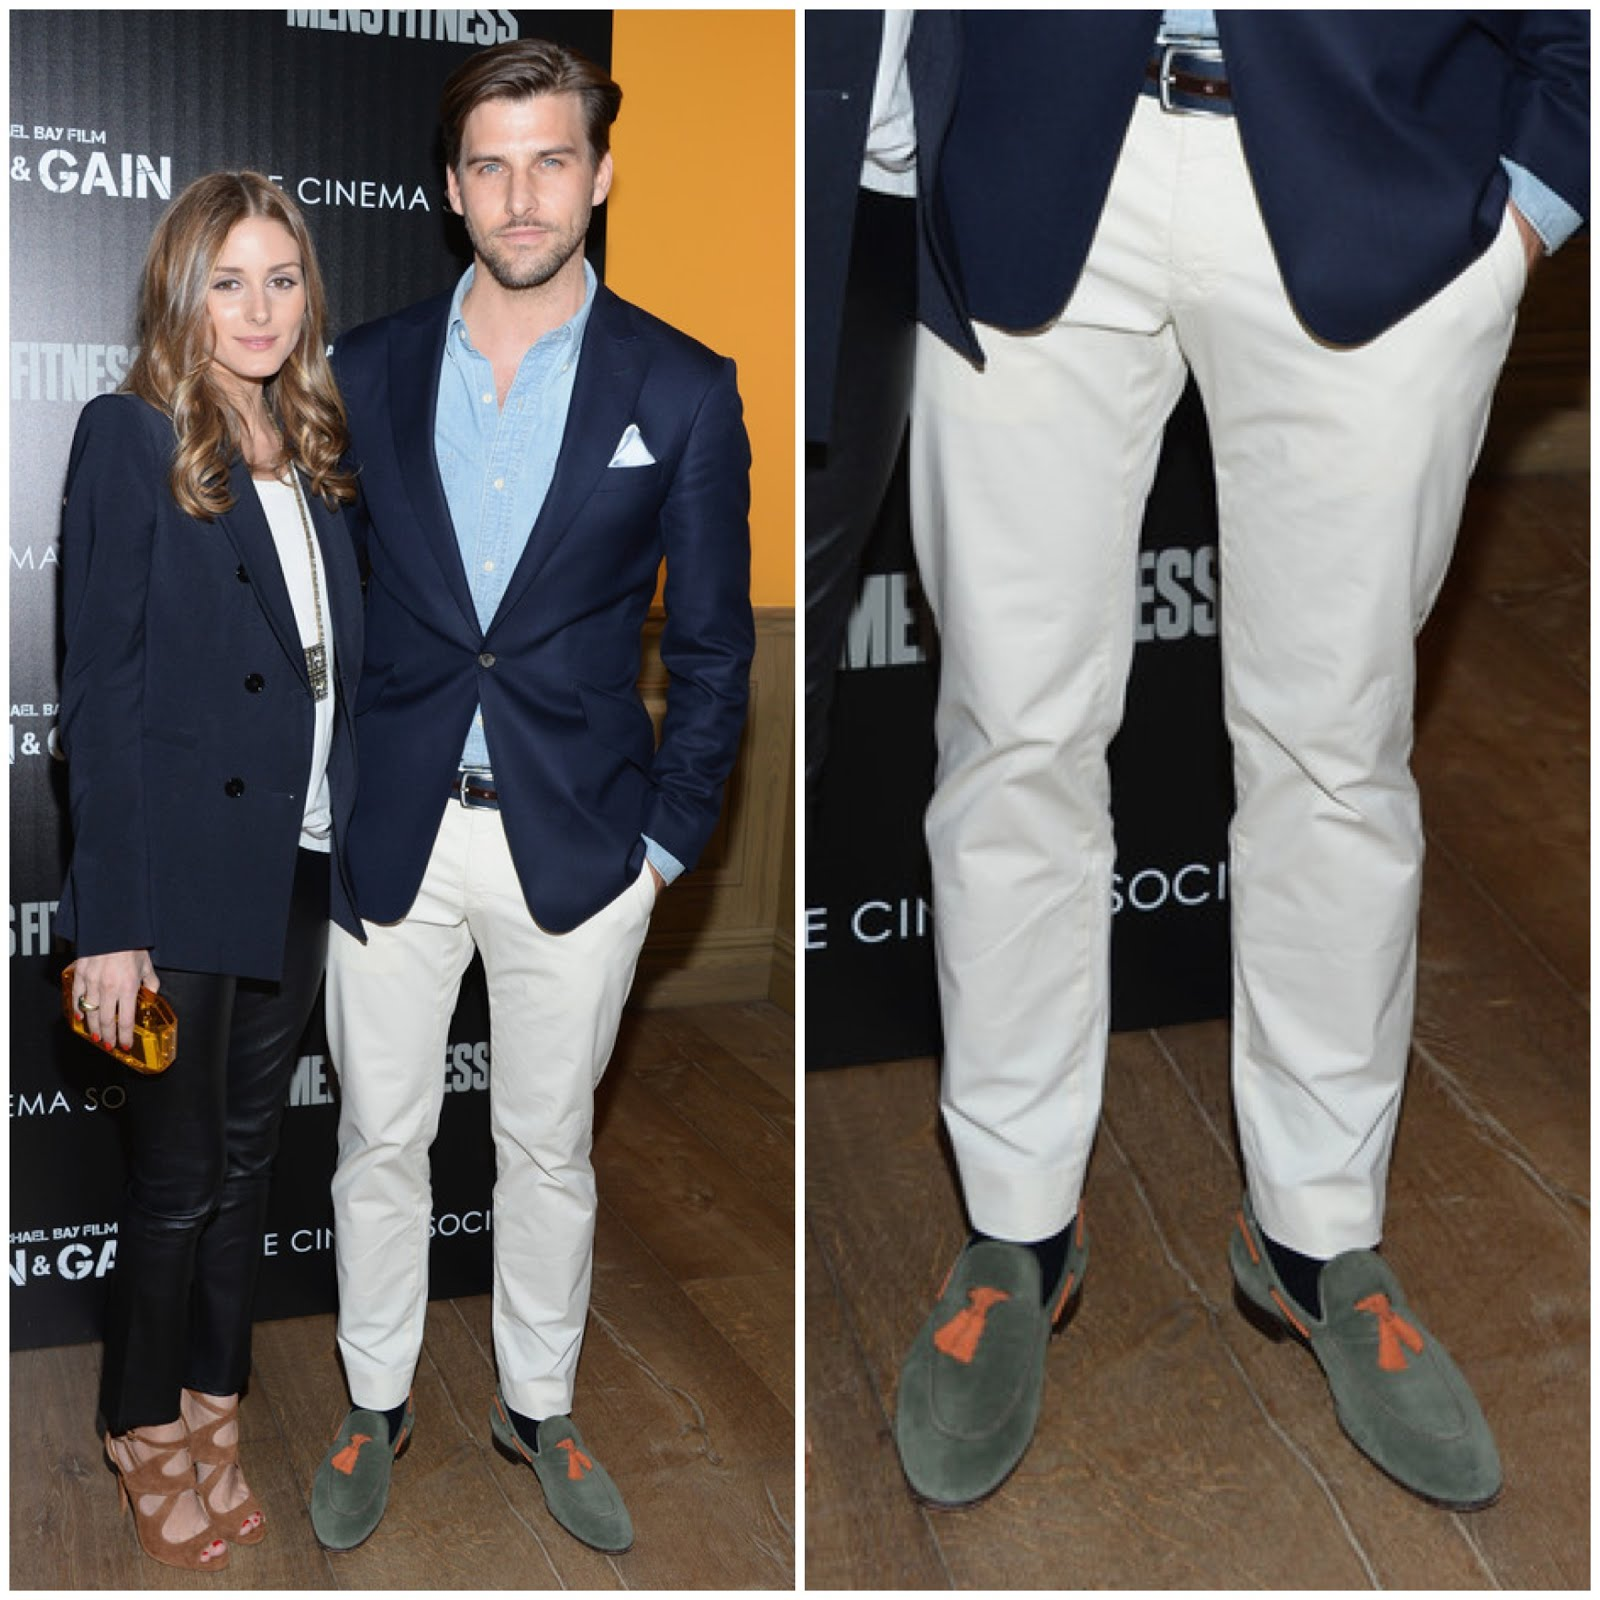 00O00 Menswear Blog Johannes Huebl Scarosso loafers - 'Pain and Gain' screening in New York, April 2013